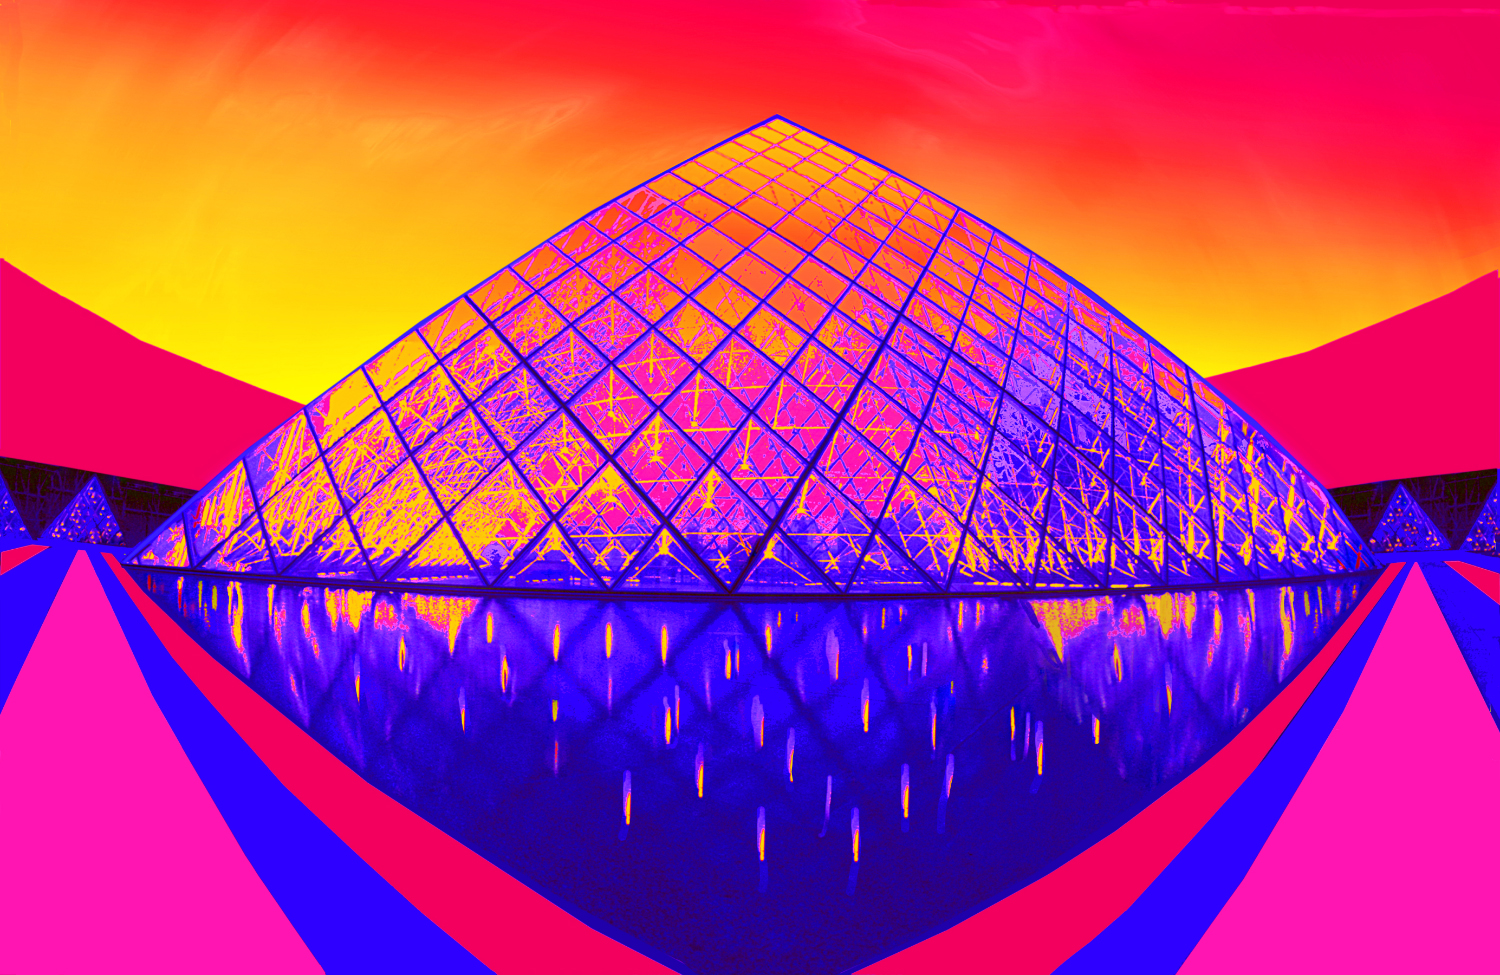 Jane_Gottlieb-Paris Pyramid at Dusk.jpg